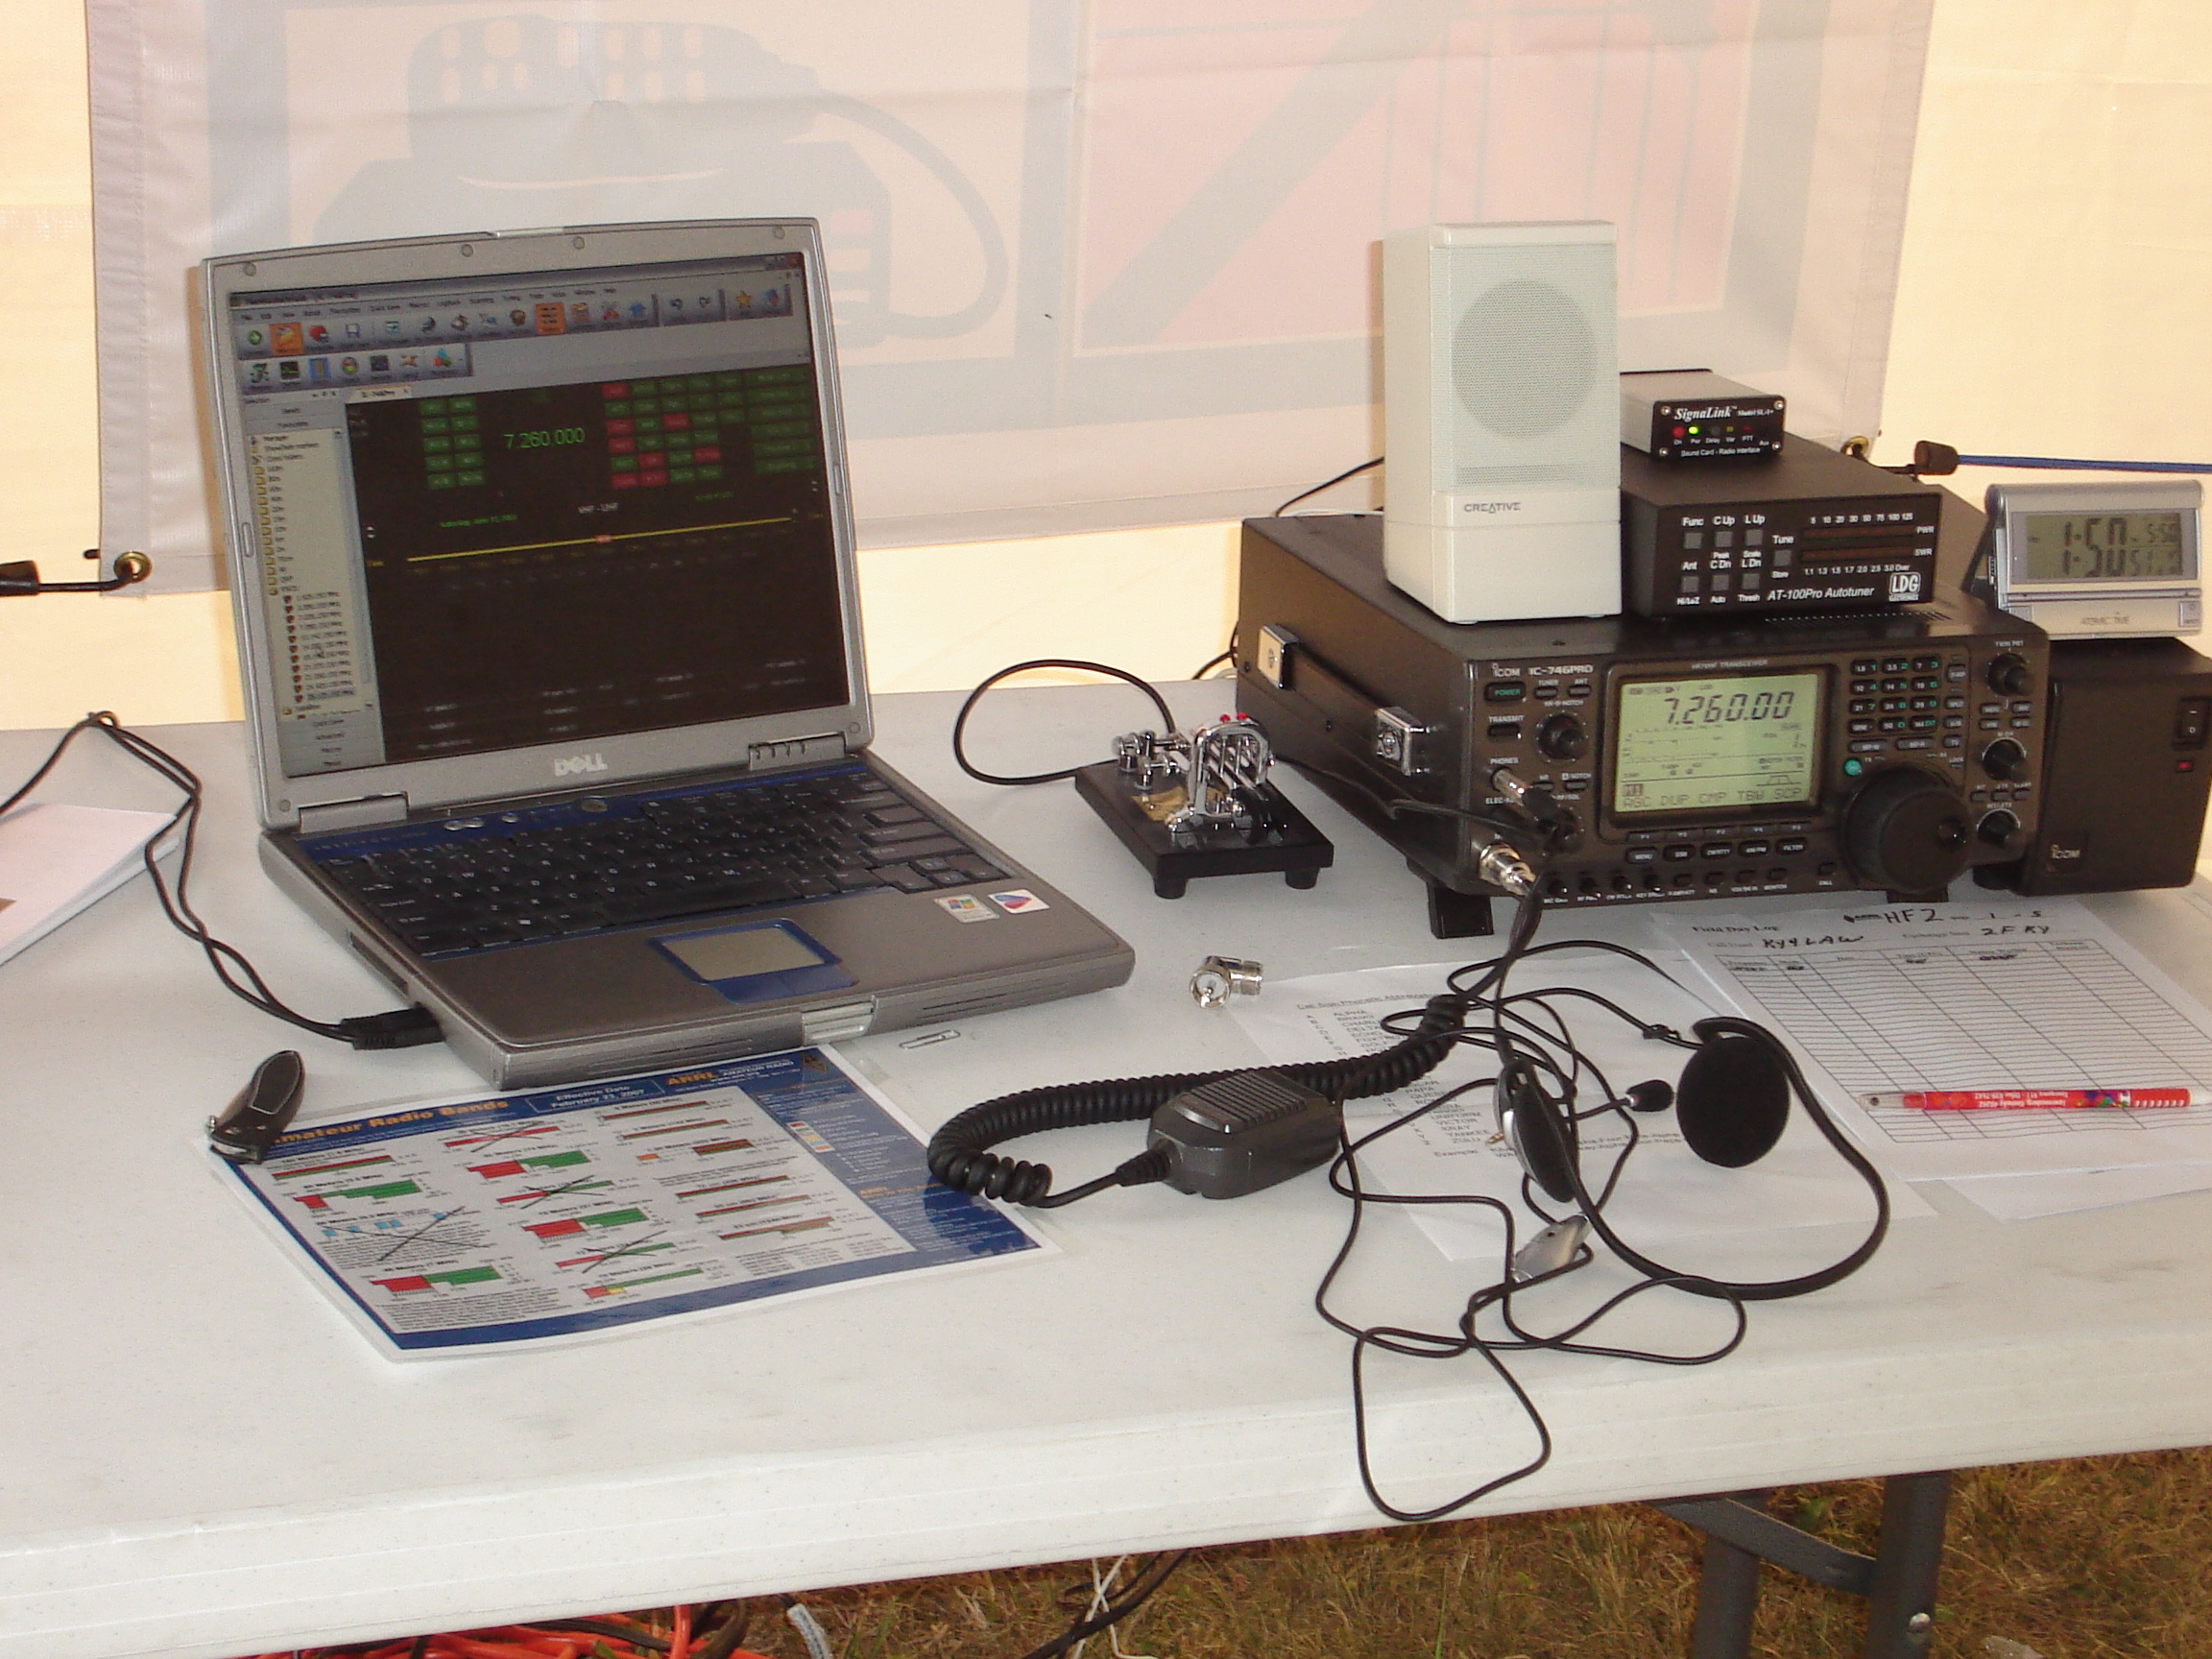 Digital Station at Field Day 2008